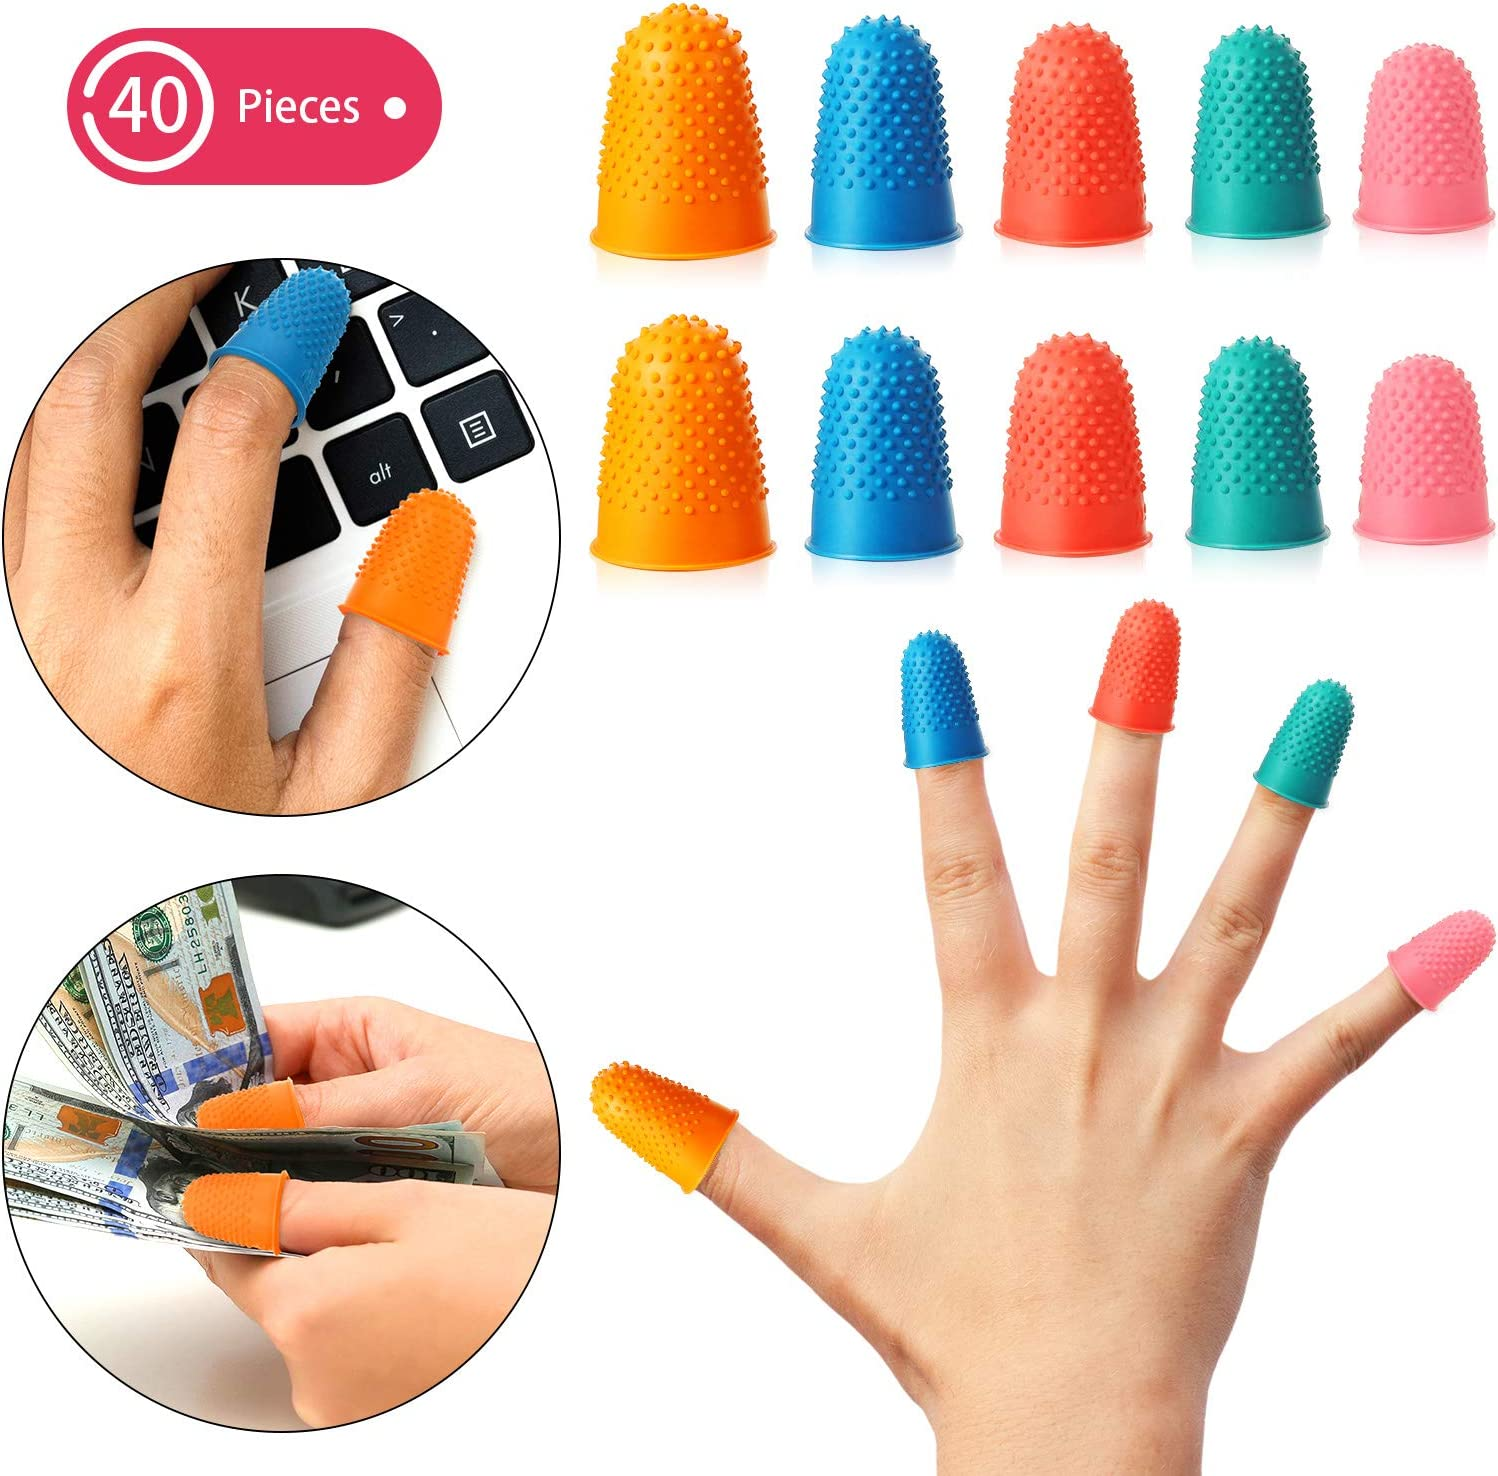 40 Pieces Rubber Fingers Pads Tip Grips for Money Counting Collating Writing Sorting Task Hot Glue and Sport Games Thick Reusable Protector Assorted Sizes Blue Orange Green Red Pink